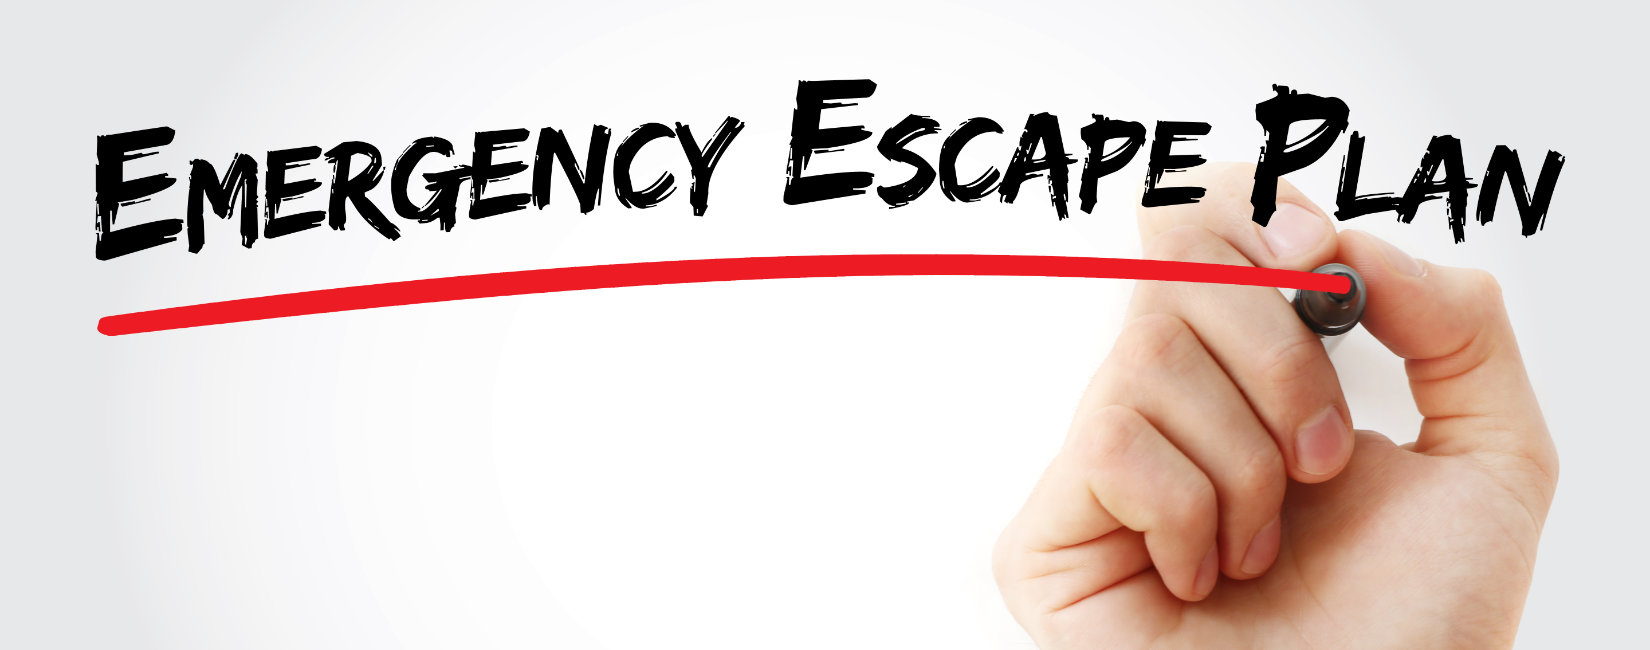 Workplace emergency escape plan, RoSPA approved fire marshal training